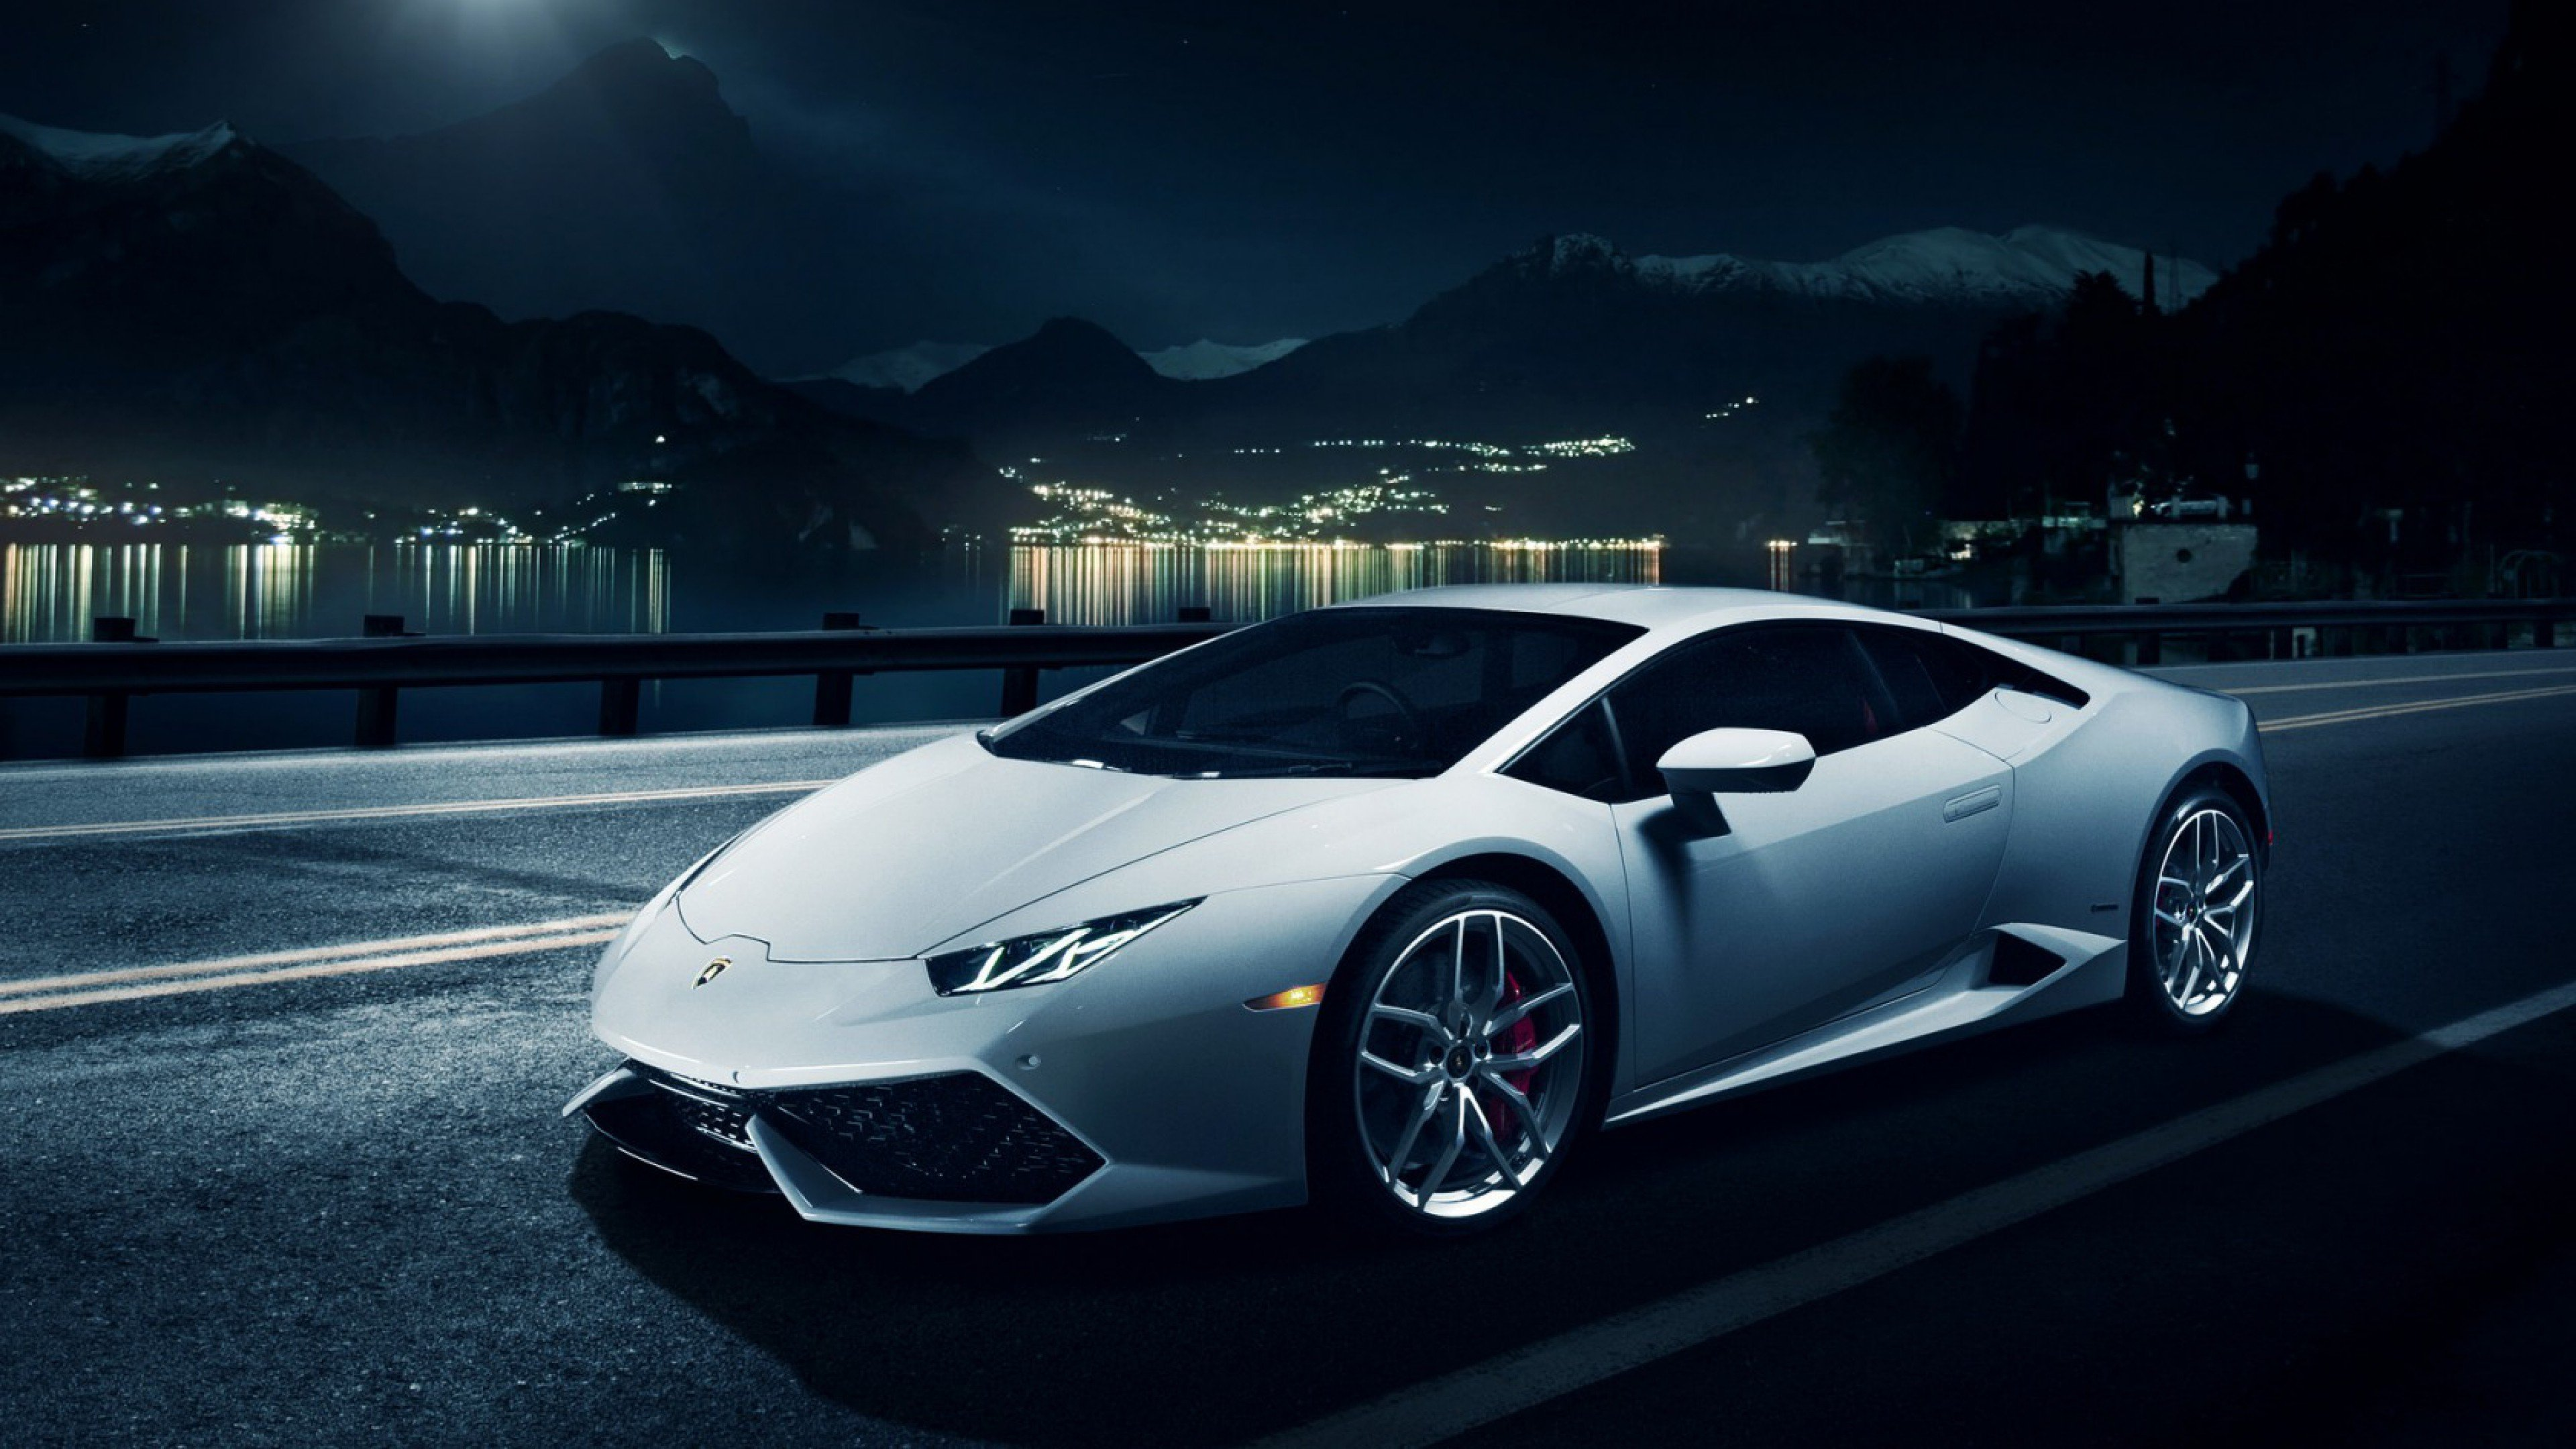 1360x768 Lamborghini Huracan Hd Laptop Hd Hd 4k Wallpapers Images